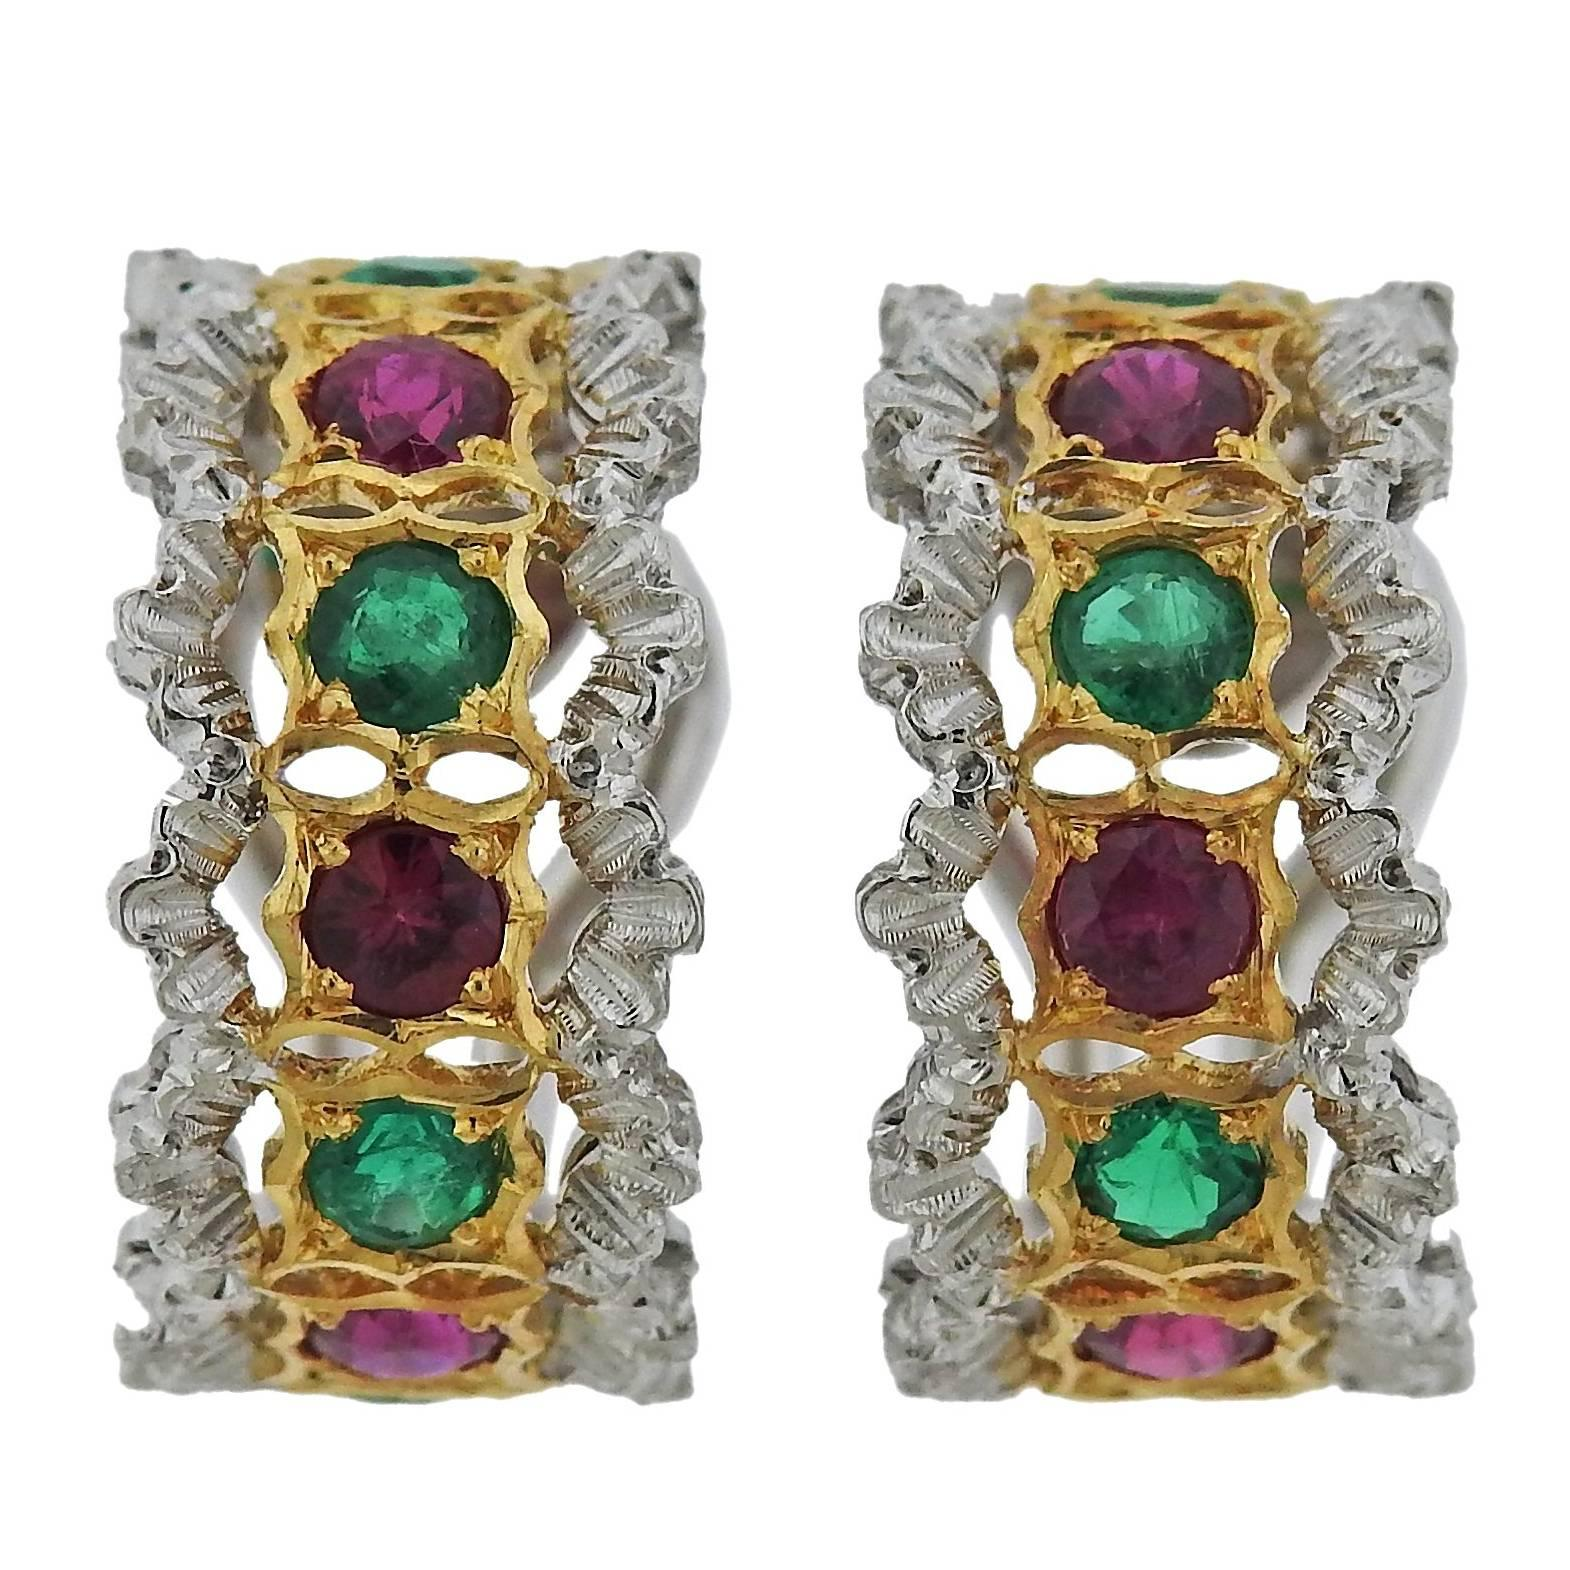 Buccellati Gold Ruby Emerald Hoop Earrings For Sale at 1stdibs